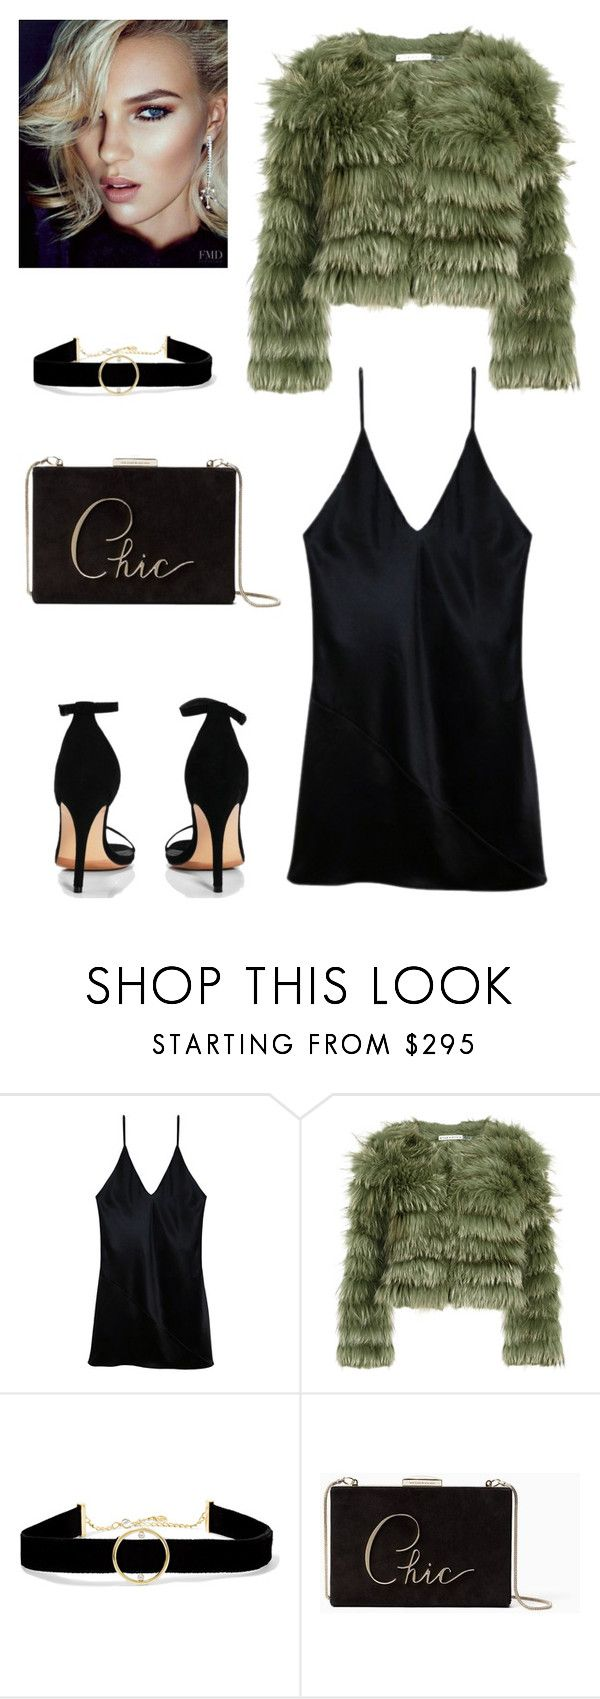 """""""Blonde"""" by www-blon ❤ liked on Polyvore featuring Fleur du Mal, Alice + Olivia, Anissa Kermiche, Kate Spade and Boohoo"""